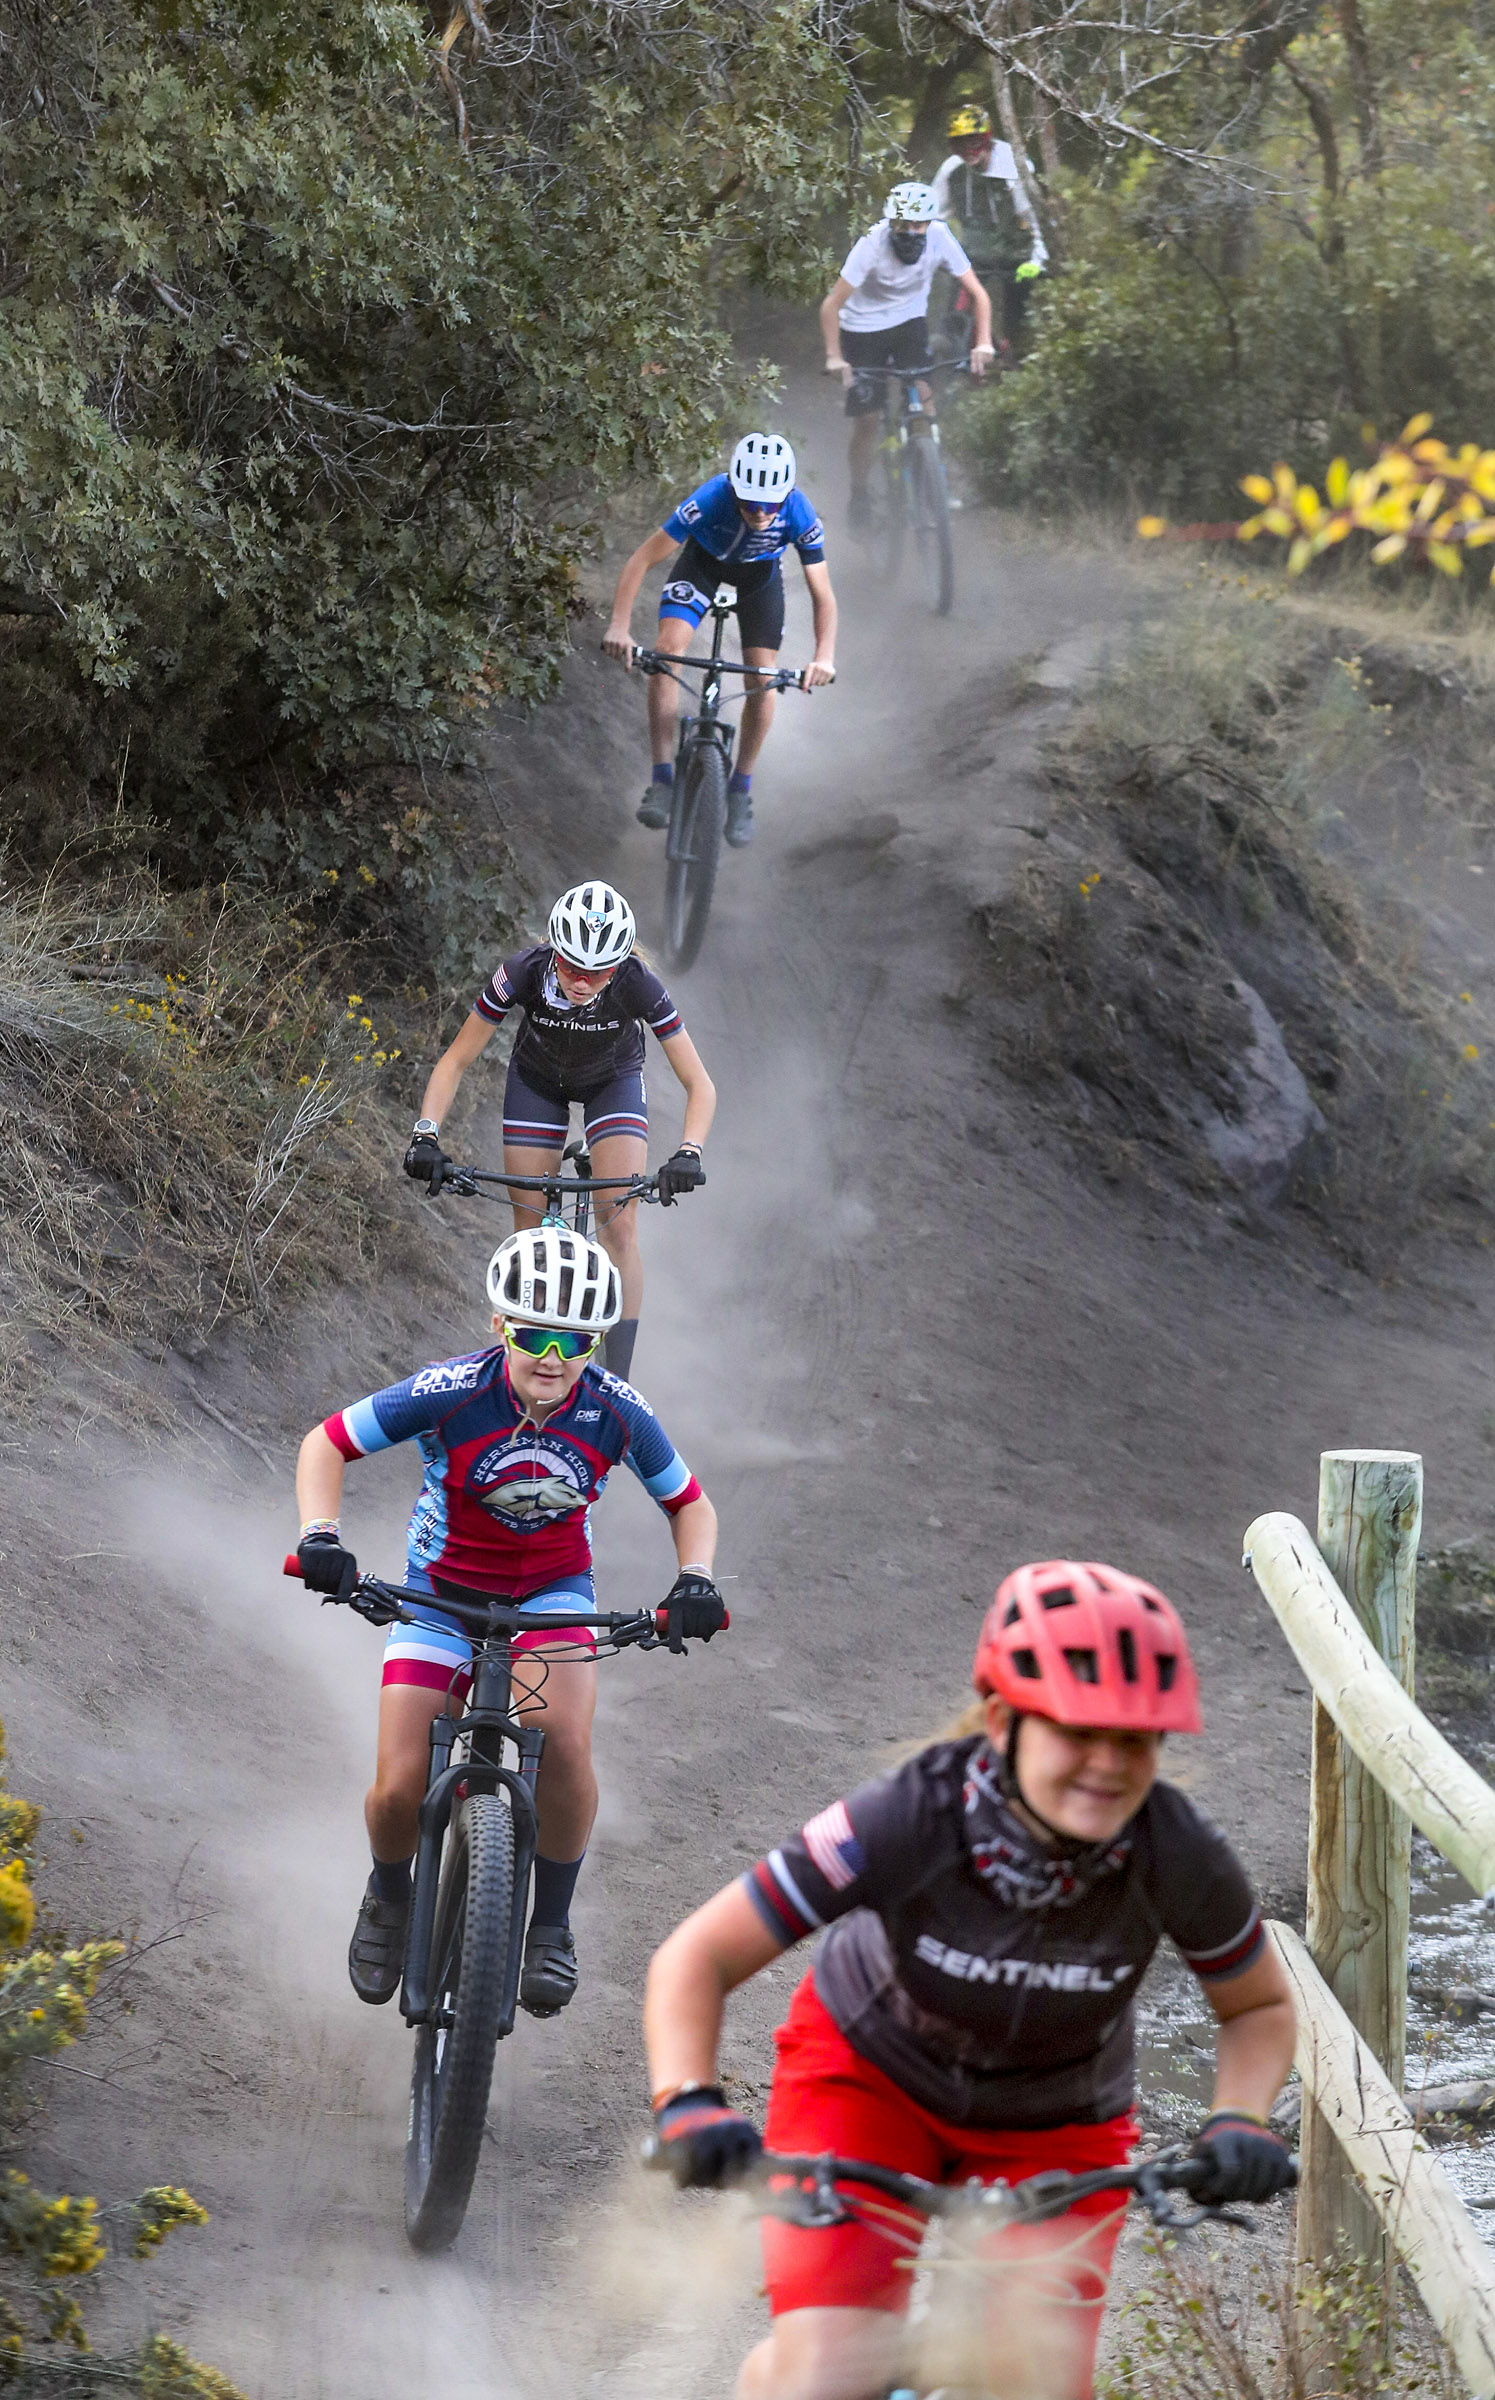 Mountain bikers from the Bingham, Herriman and Mountain Ridge high school club teams ride the trail system in Yellow Fork Canyon near Herriman on Tuesday, Sept. 22, 2020. A fundraising campaign by the teams raised $200,000 for Salt Lake County to improve trails in Yellow Fork and Butterfield canyons.